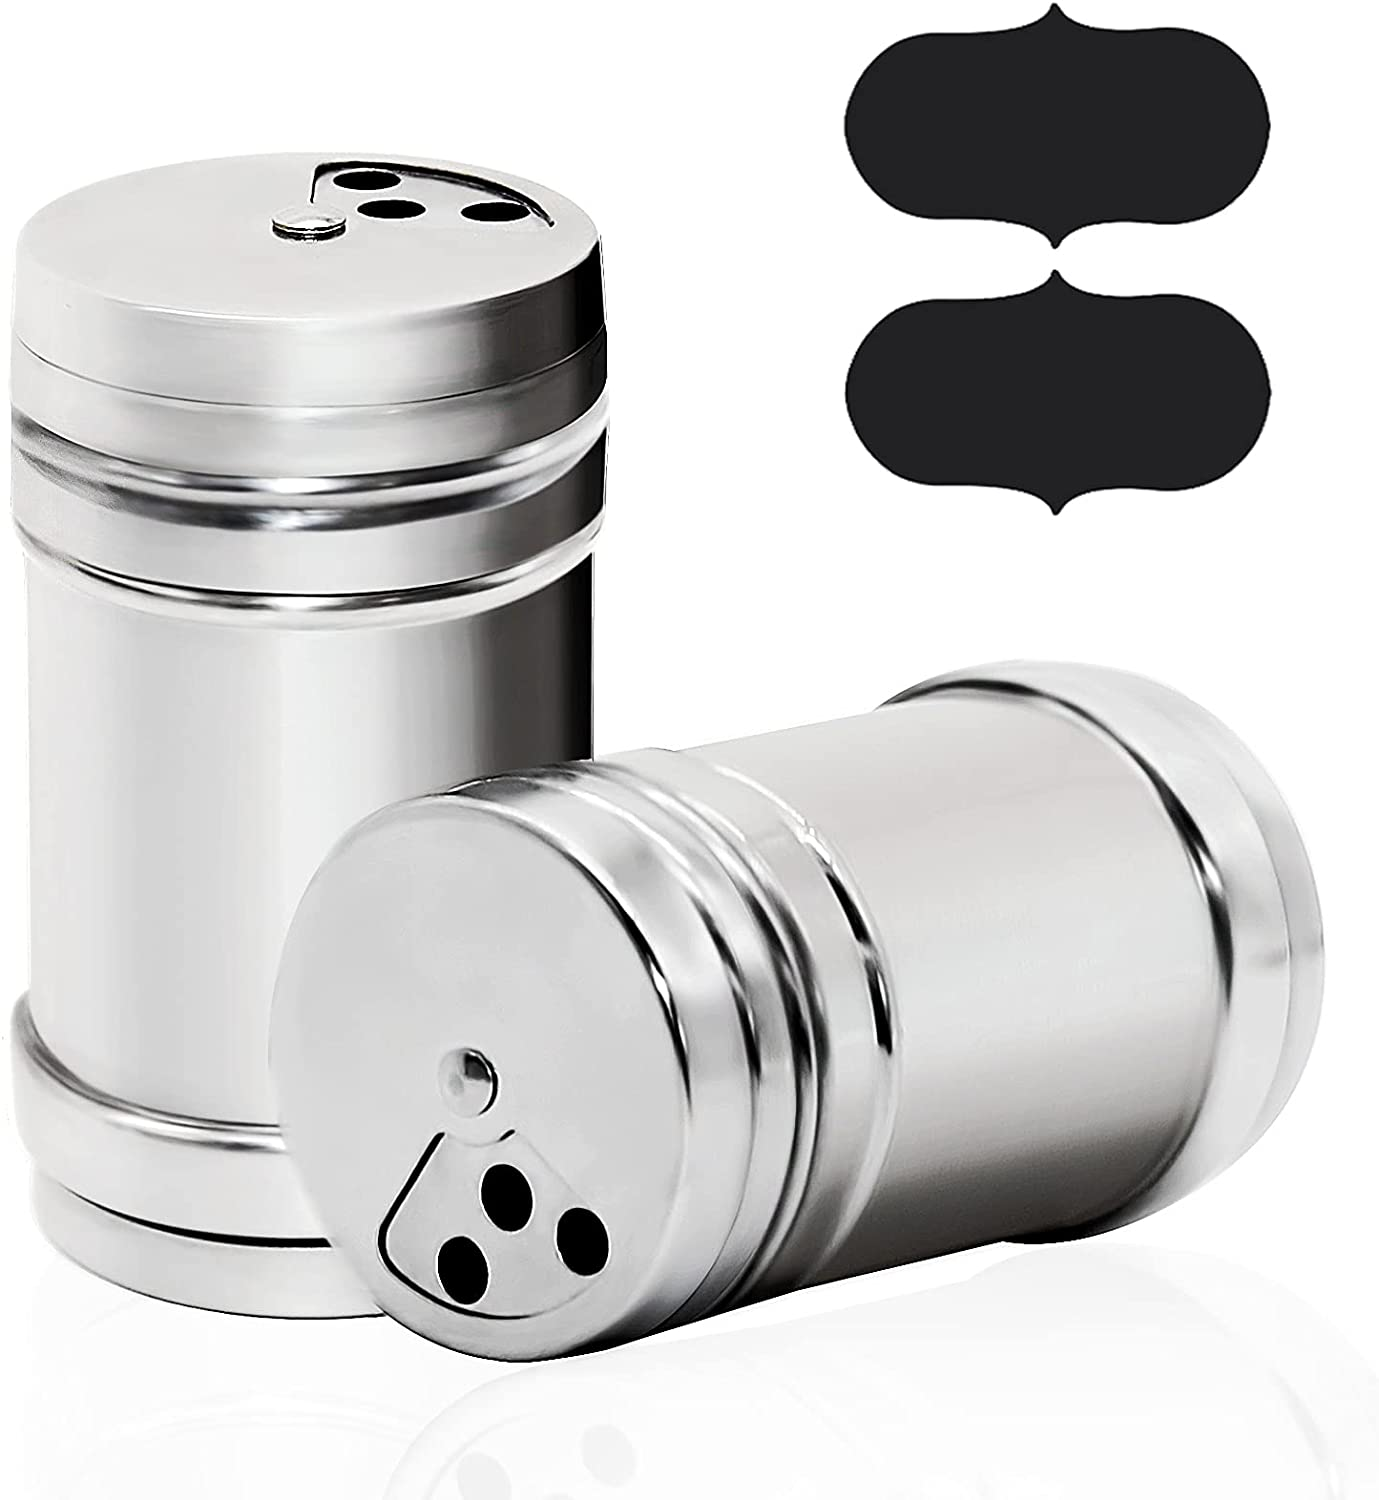 LZNBHH 2PCS Stainless Steel Pepper Dredges Salt Seasoni Shakers Fort Safety and trust Worth Mall